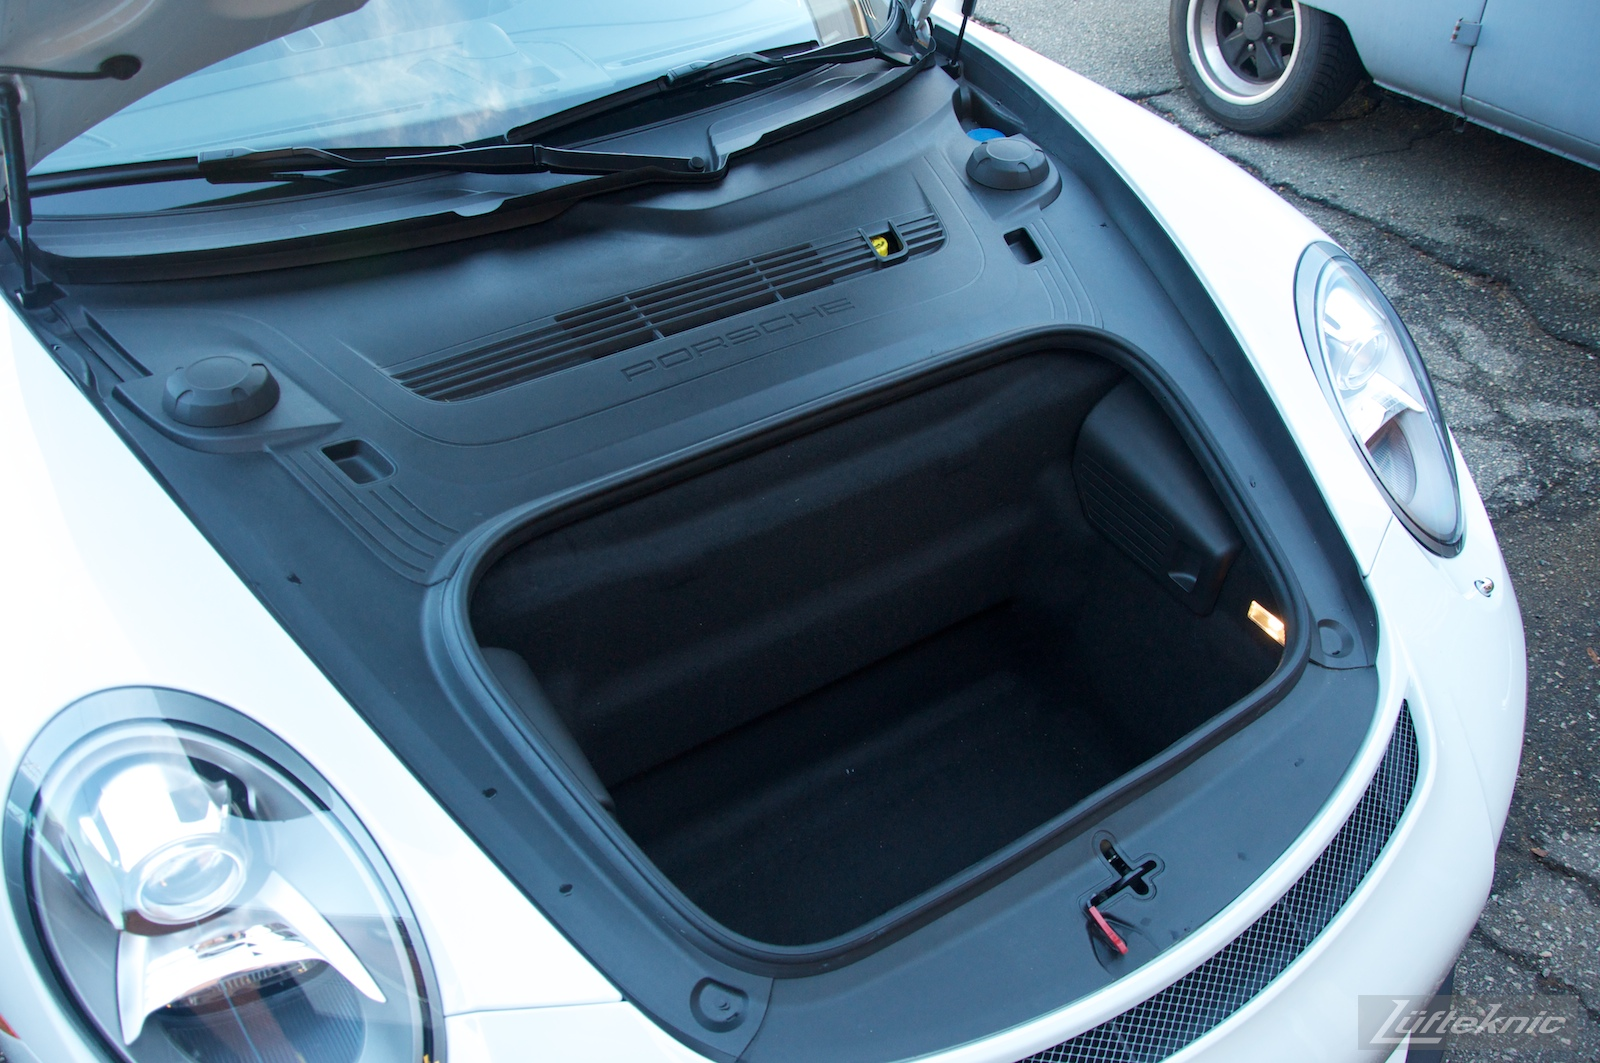 Open hood shows truck space at the front of the Lüfteknic Porsche 991 GT3